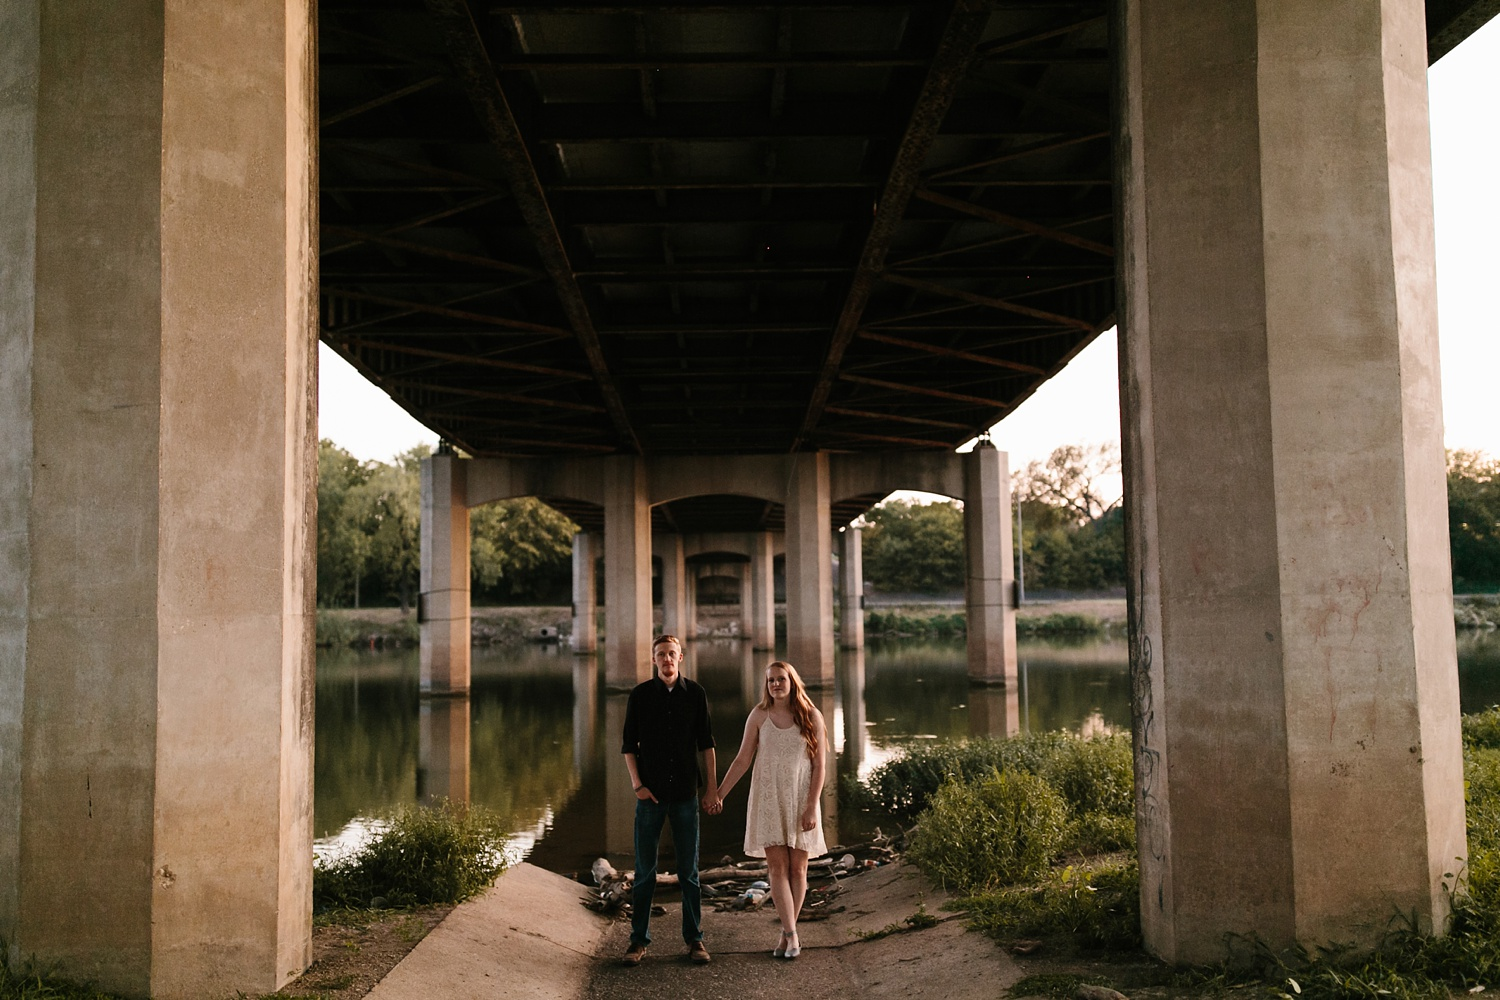 Kayla + Alex _ a joyful and loving engagement shoot in Waco, Texas by North Texas Wedding Photographer Rachel Meagan Photography _66